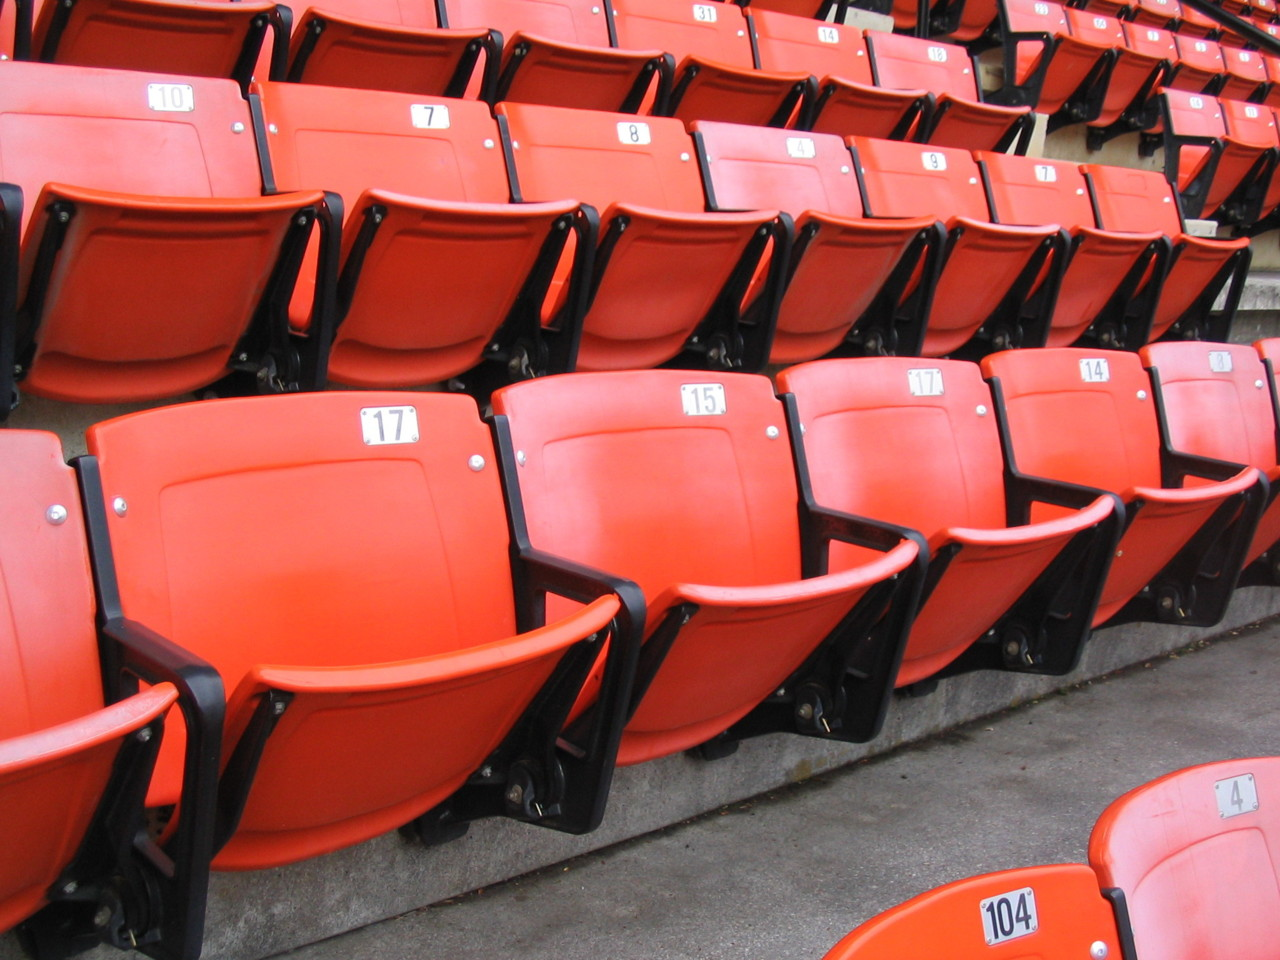 bluefield-orioles-6-numbered-seats.jpg